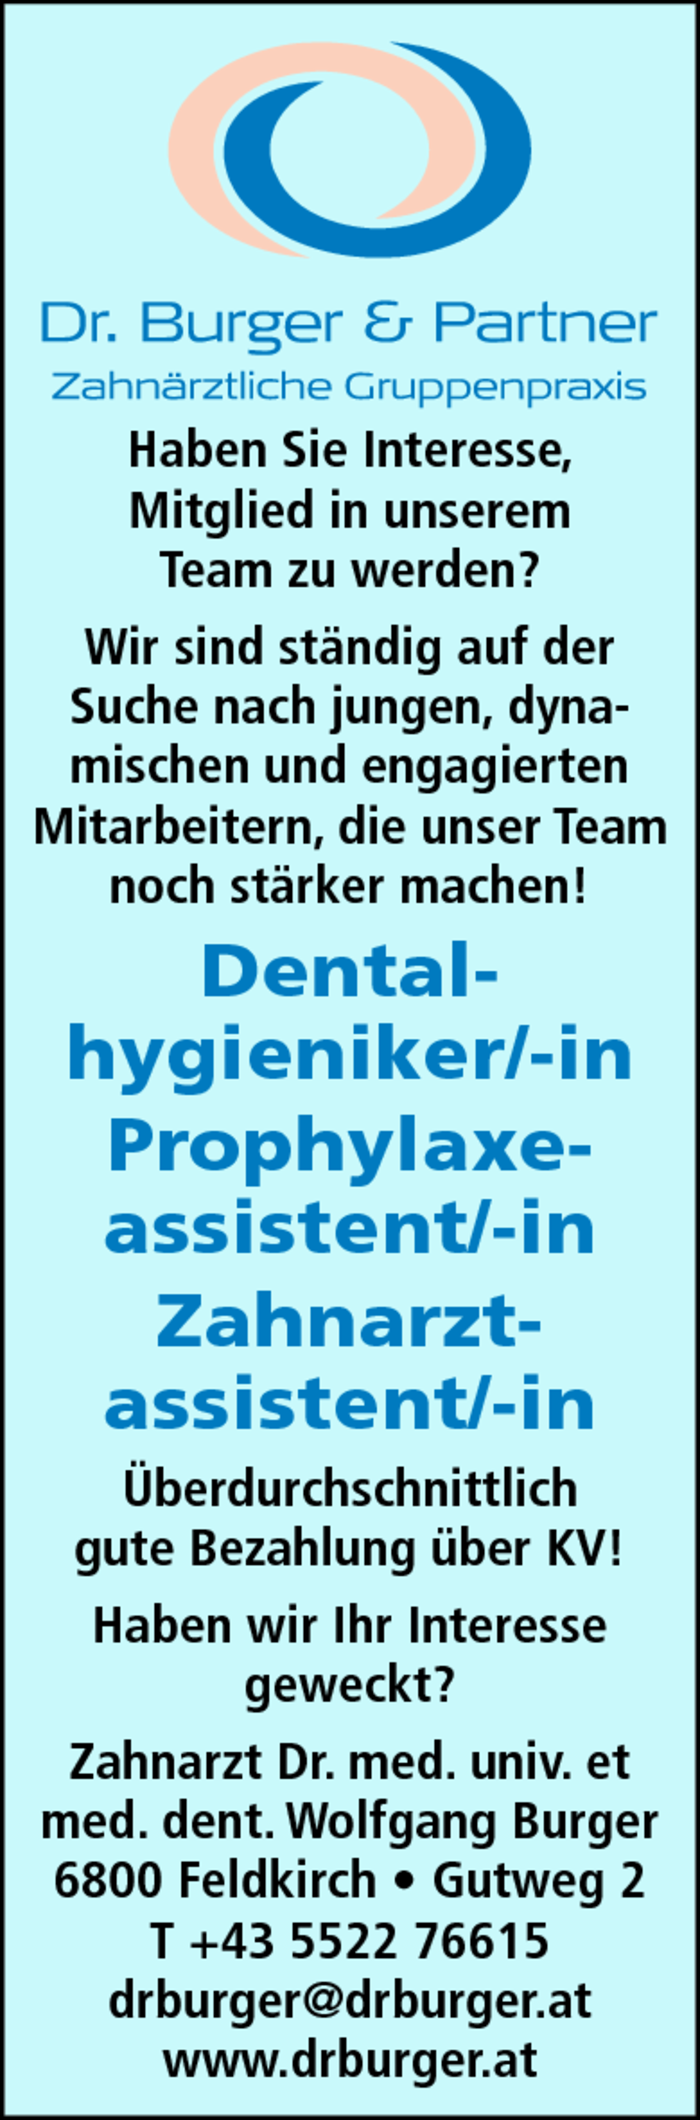 Dentalhygieniker/-in, Prophylaxeassistent/-in, Zahnarztassistent/-in